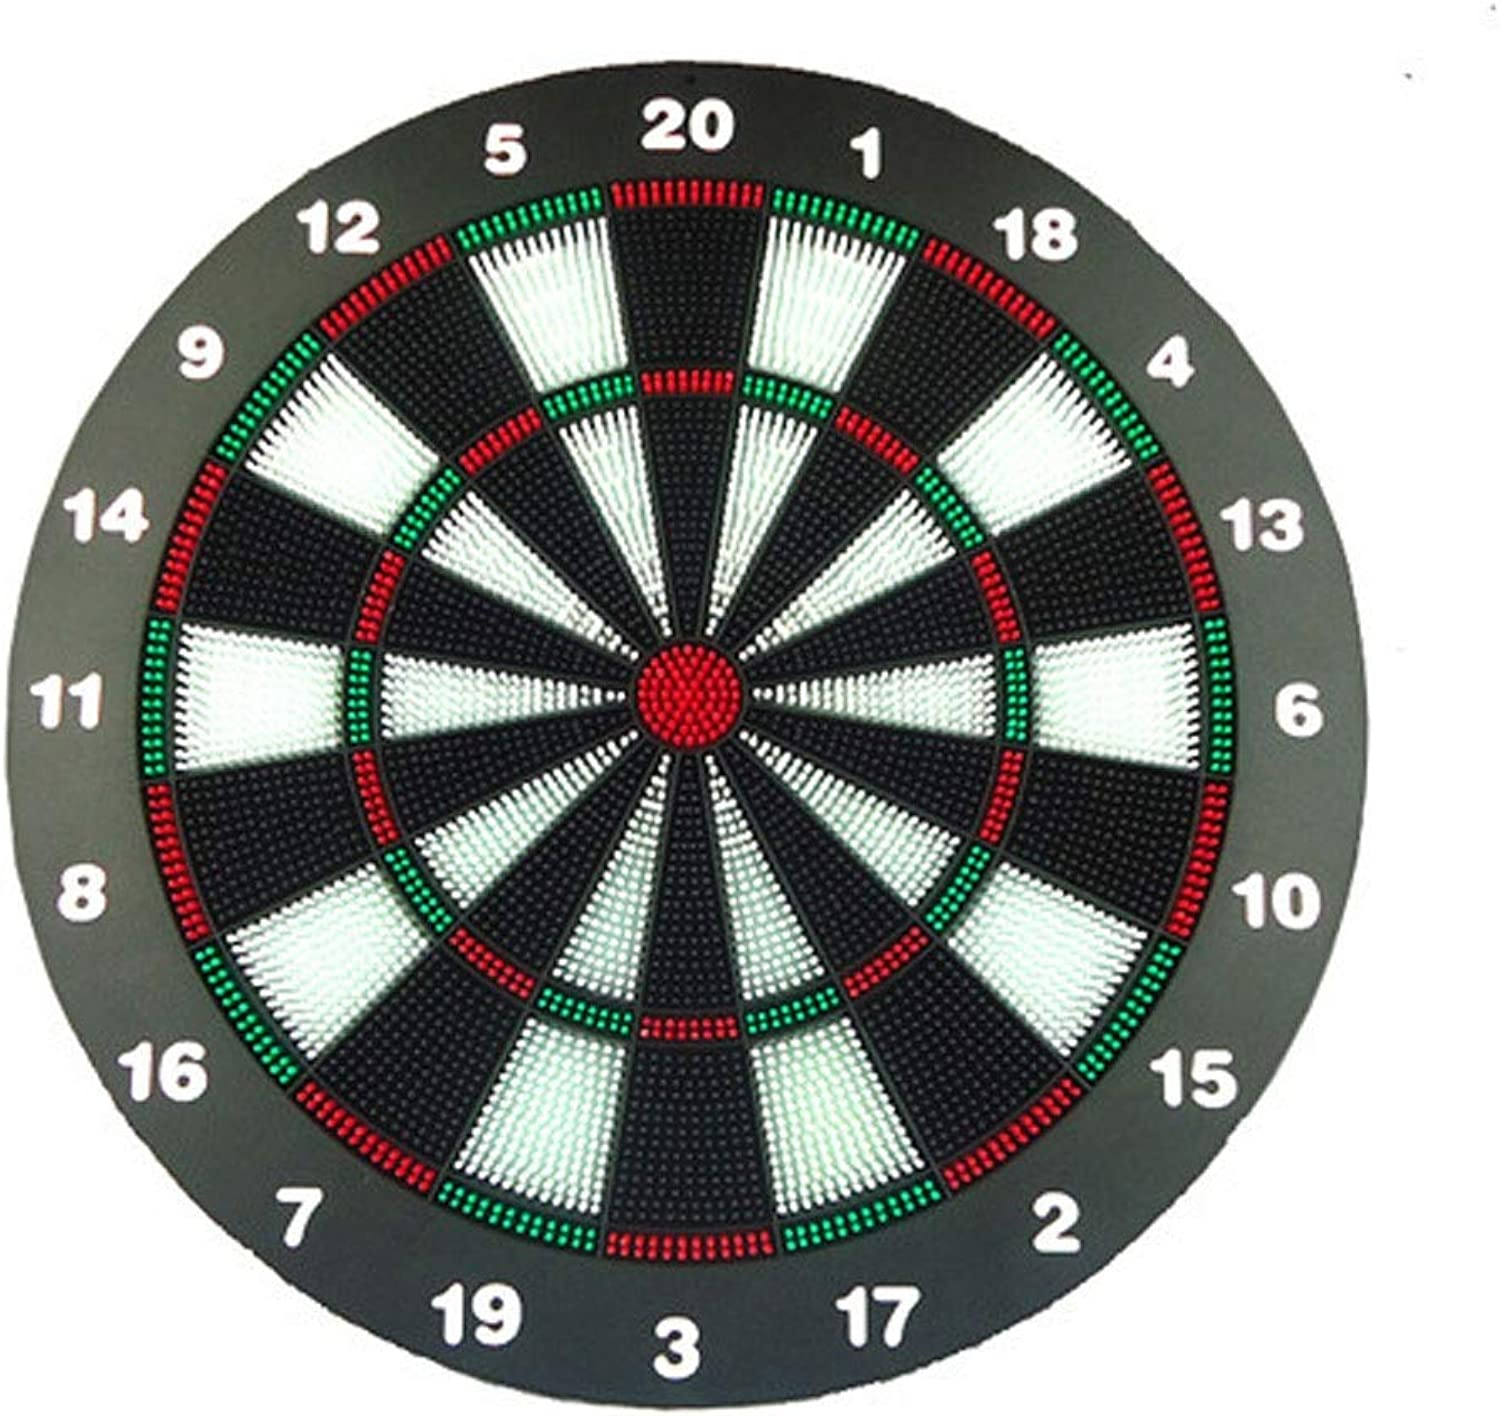 Ybriefbag Dartboard Set Dart Board Soft Tip Safety Kids Dart Board Set Boys Toys Gifts, 16.4 inch Rubber Dartboard with 6 Soft Tip Safe Darts Great Game for Office and Family Leisure Sport